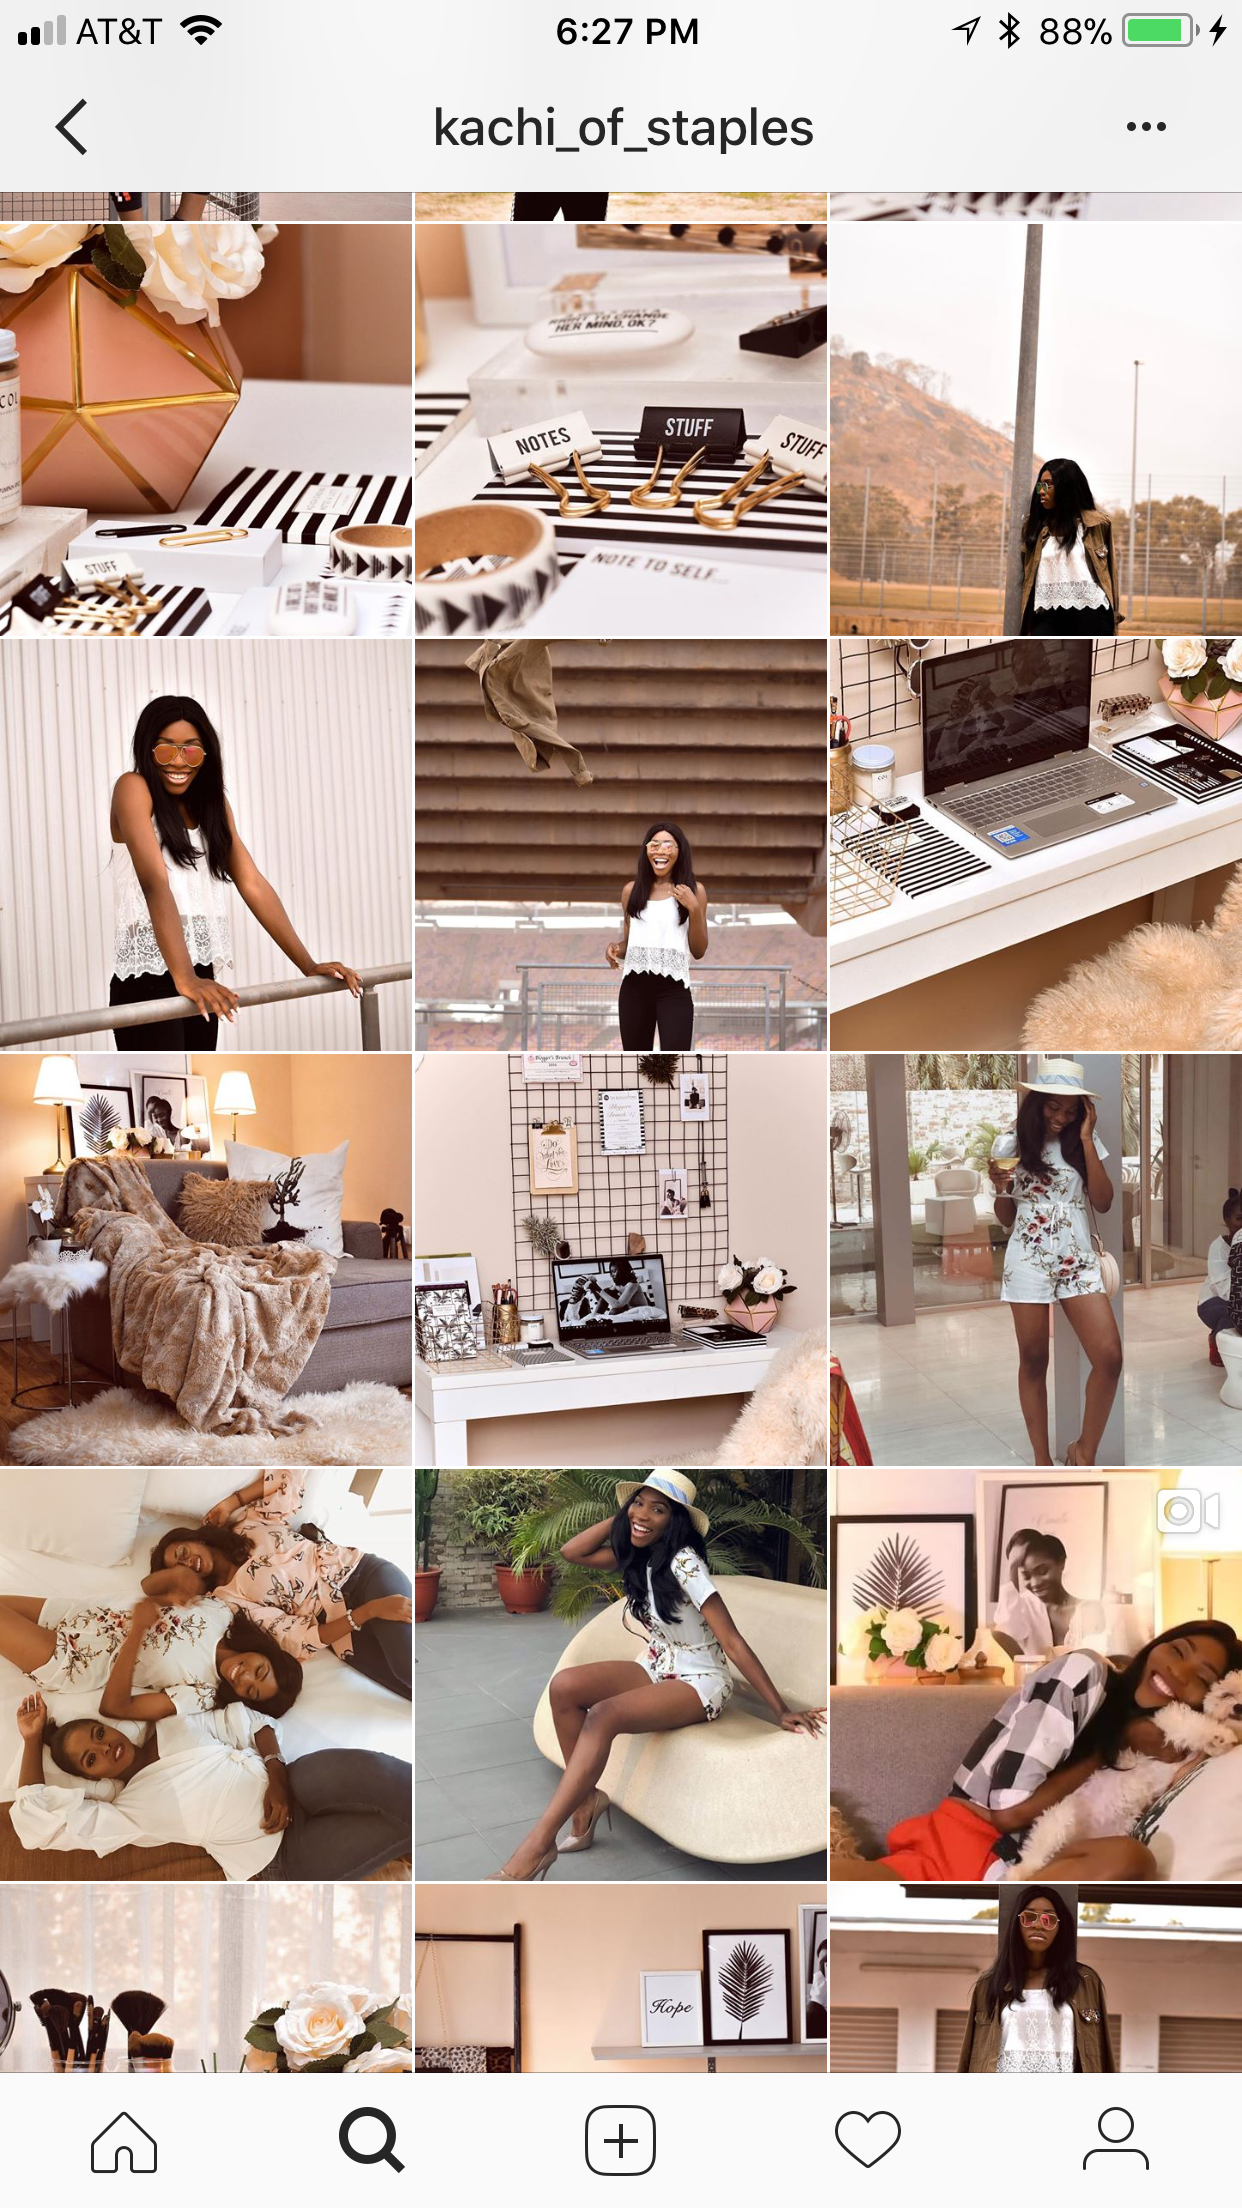 Onyekachi Opara - Kachi of staples is a fashion and lifestyle blogger. My favorite things that I enjoy reading on her blog are her decorating/DIY posts. I love reading the posts about decorating your home and office space. Her blog is very inspiring and helpful.Visit her blog at http://www.staplesandstyle.comFollow her on instagram @kachi_of_staples